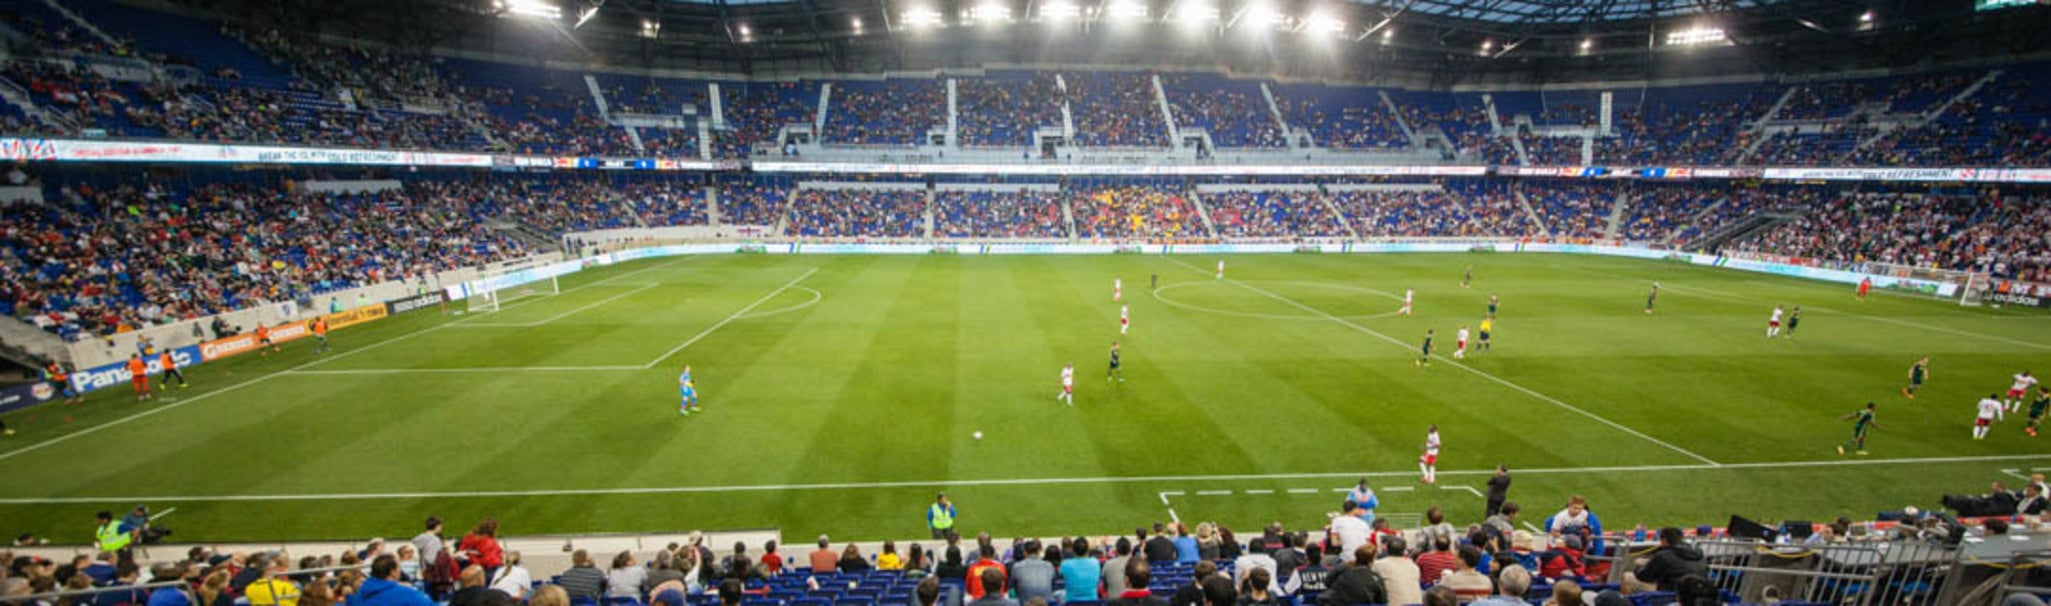 Seat view from Club Seats